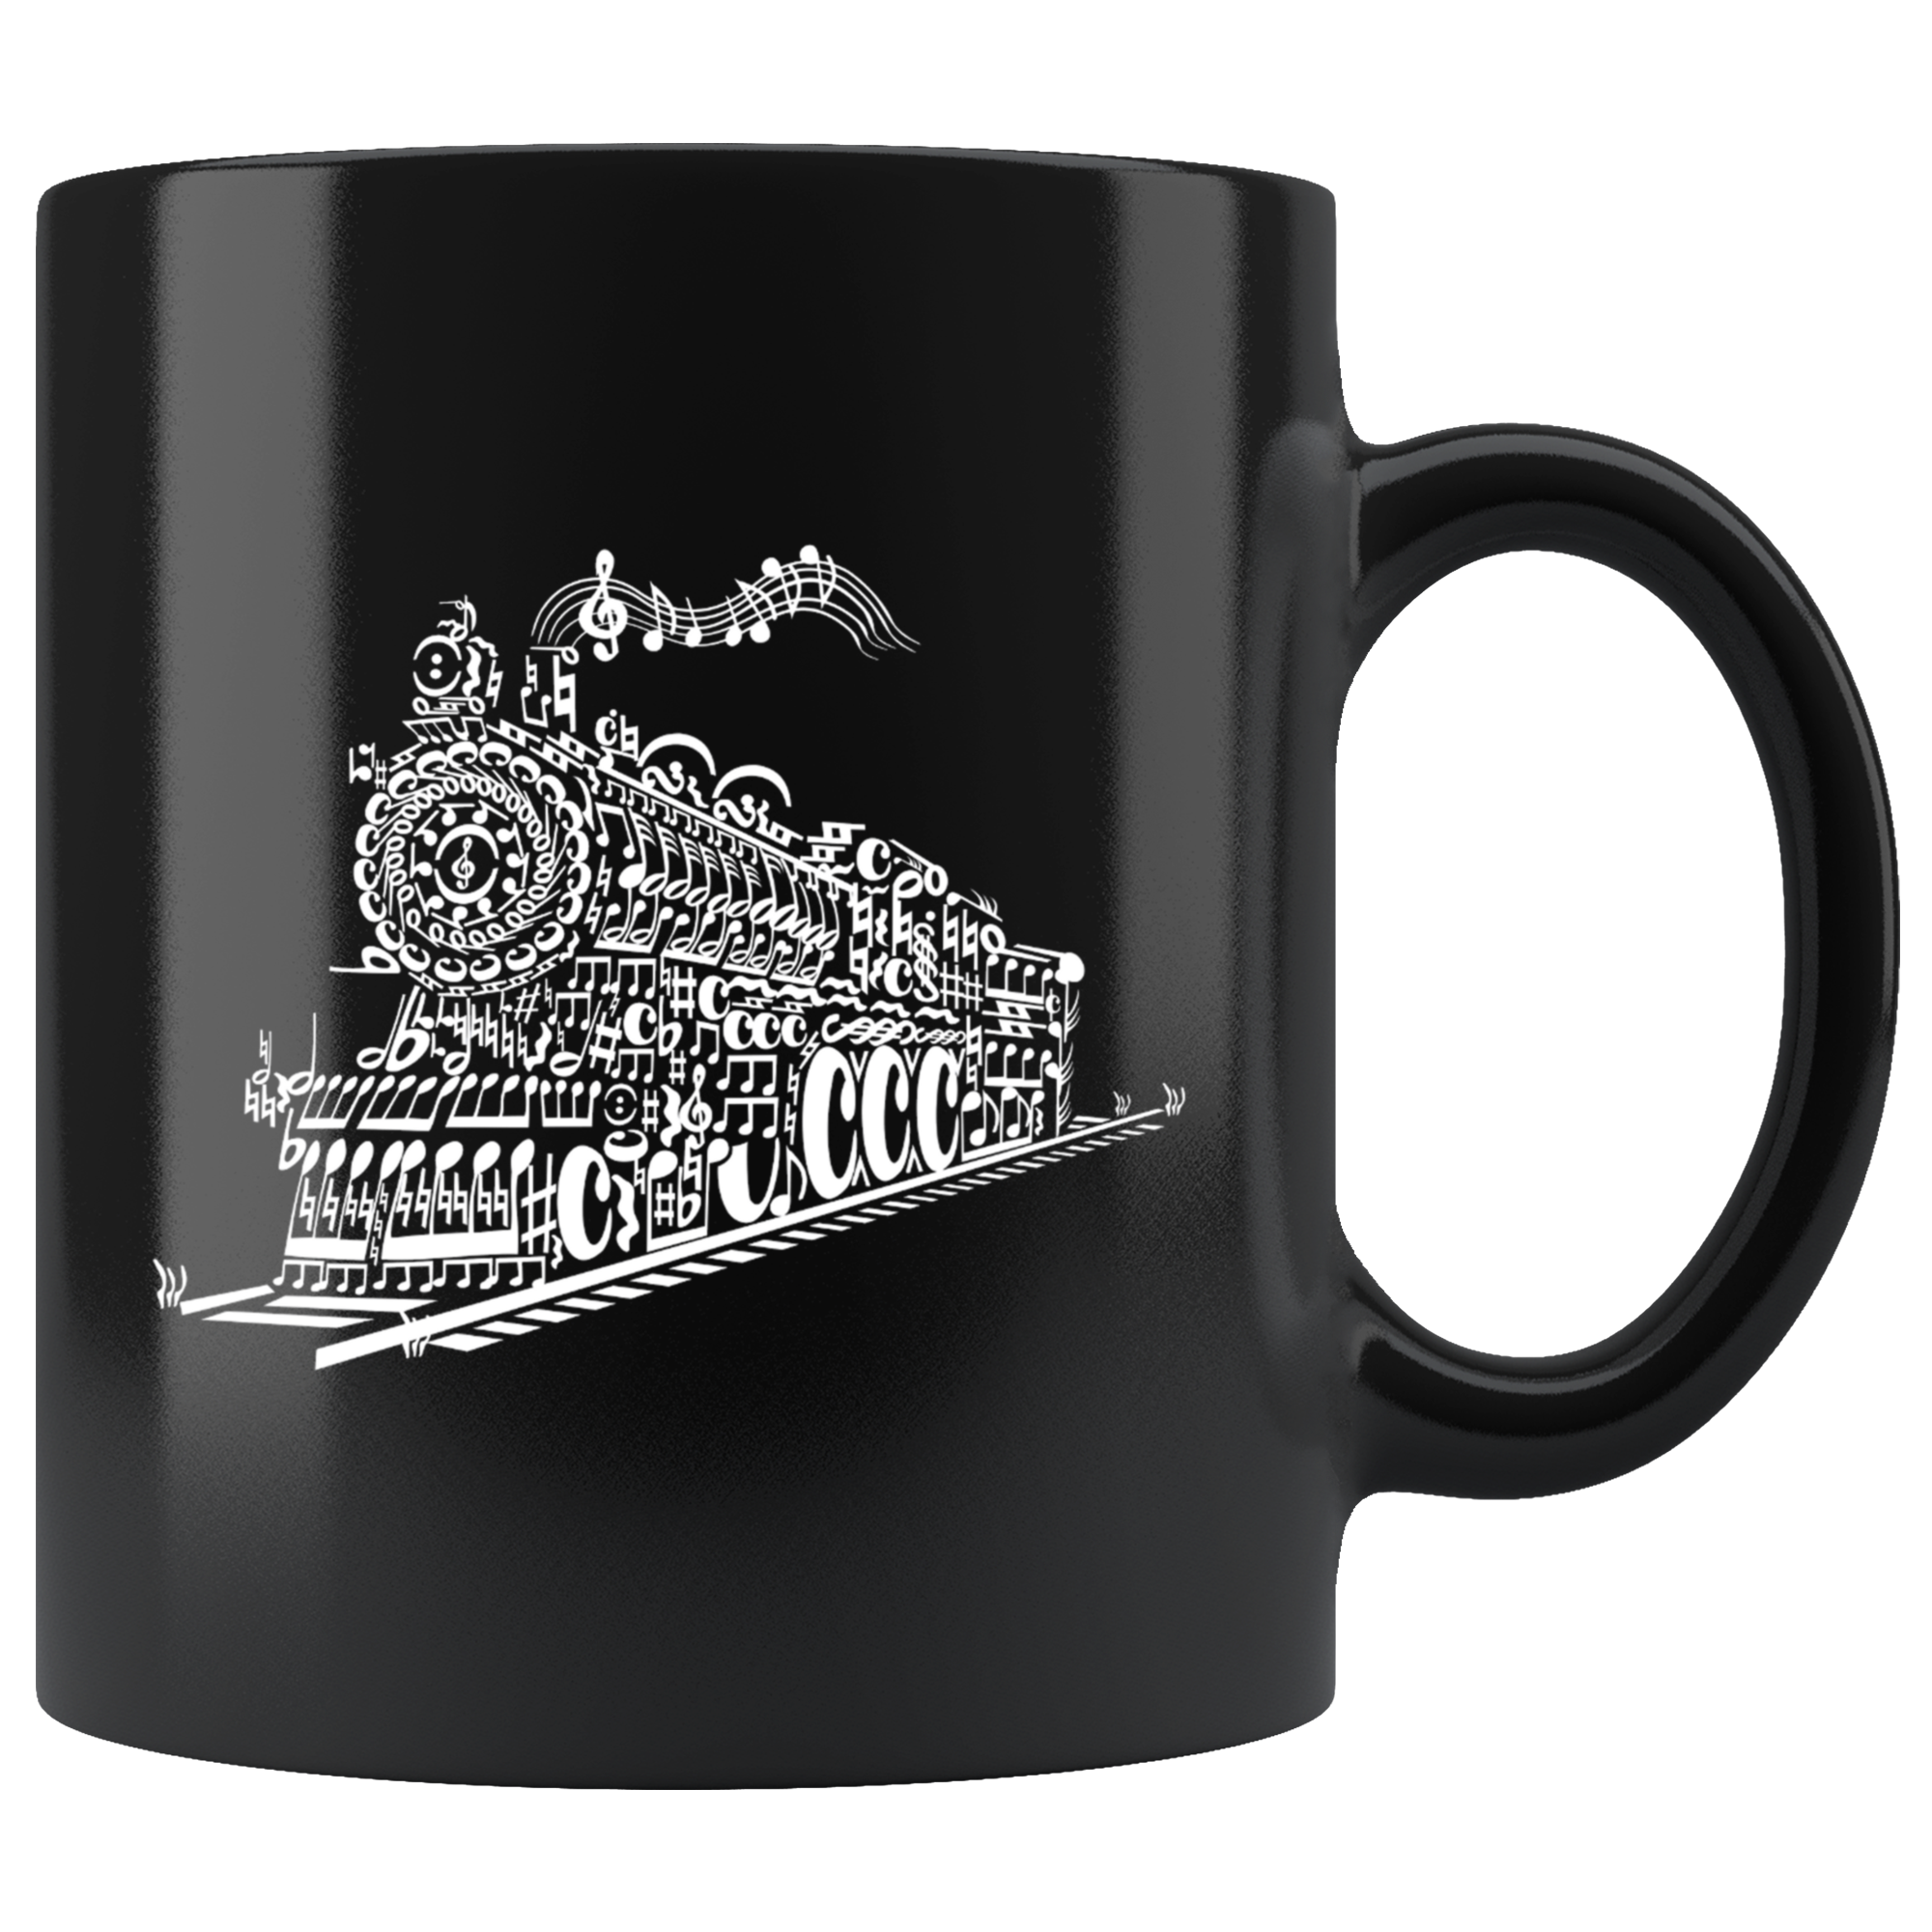 11oz Mug (Black) - Train Song